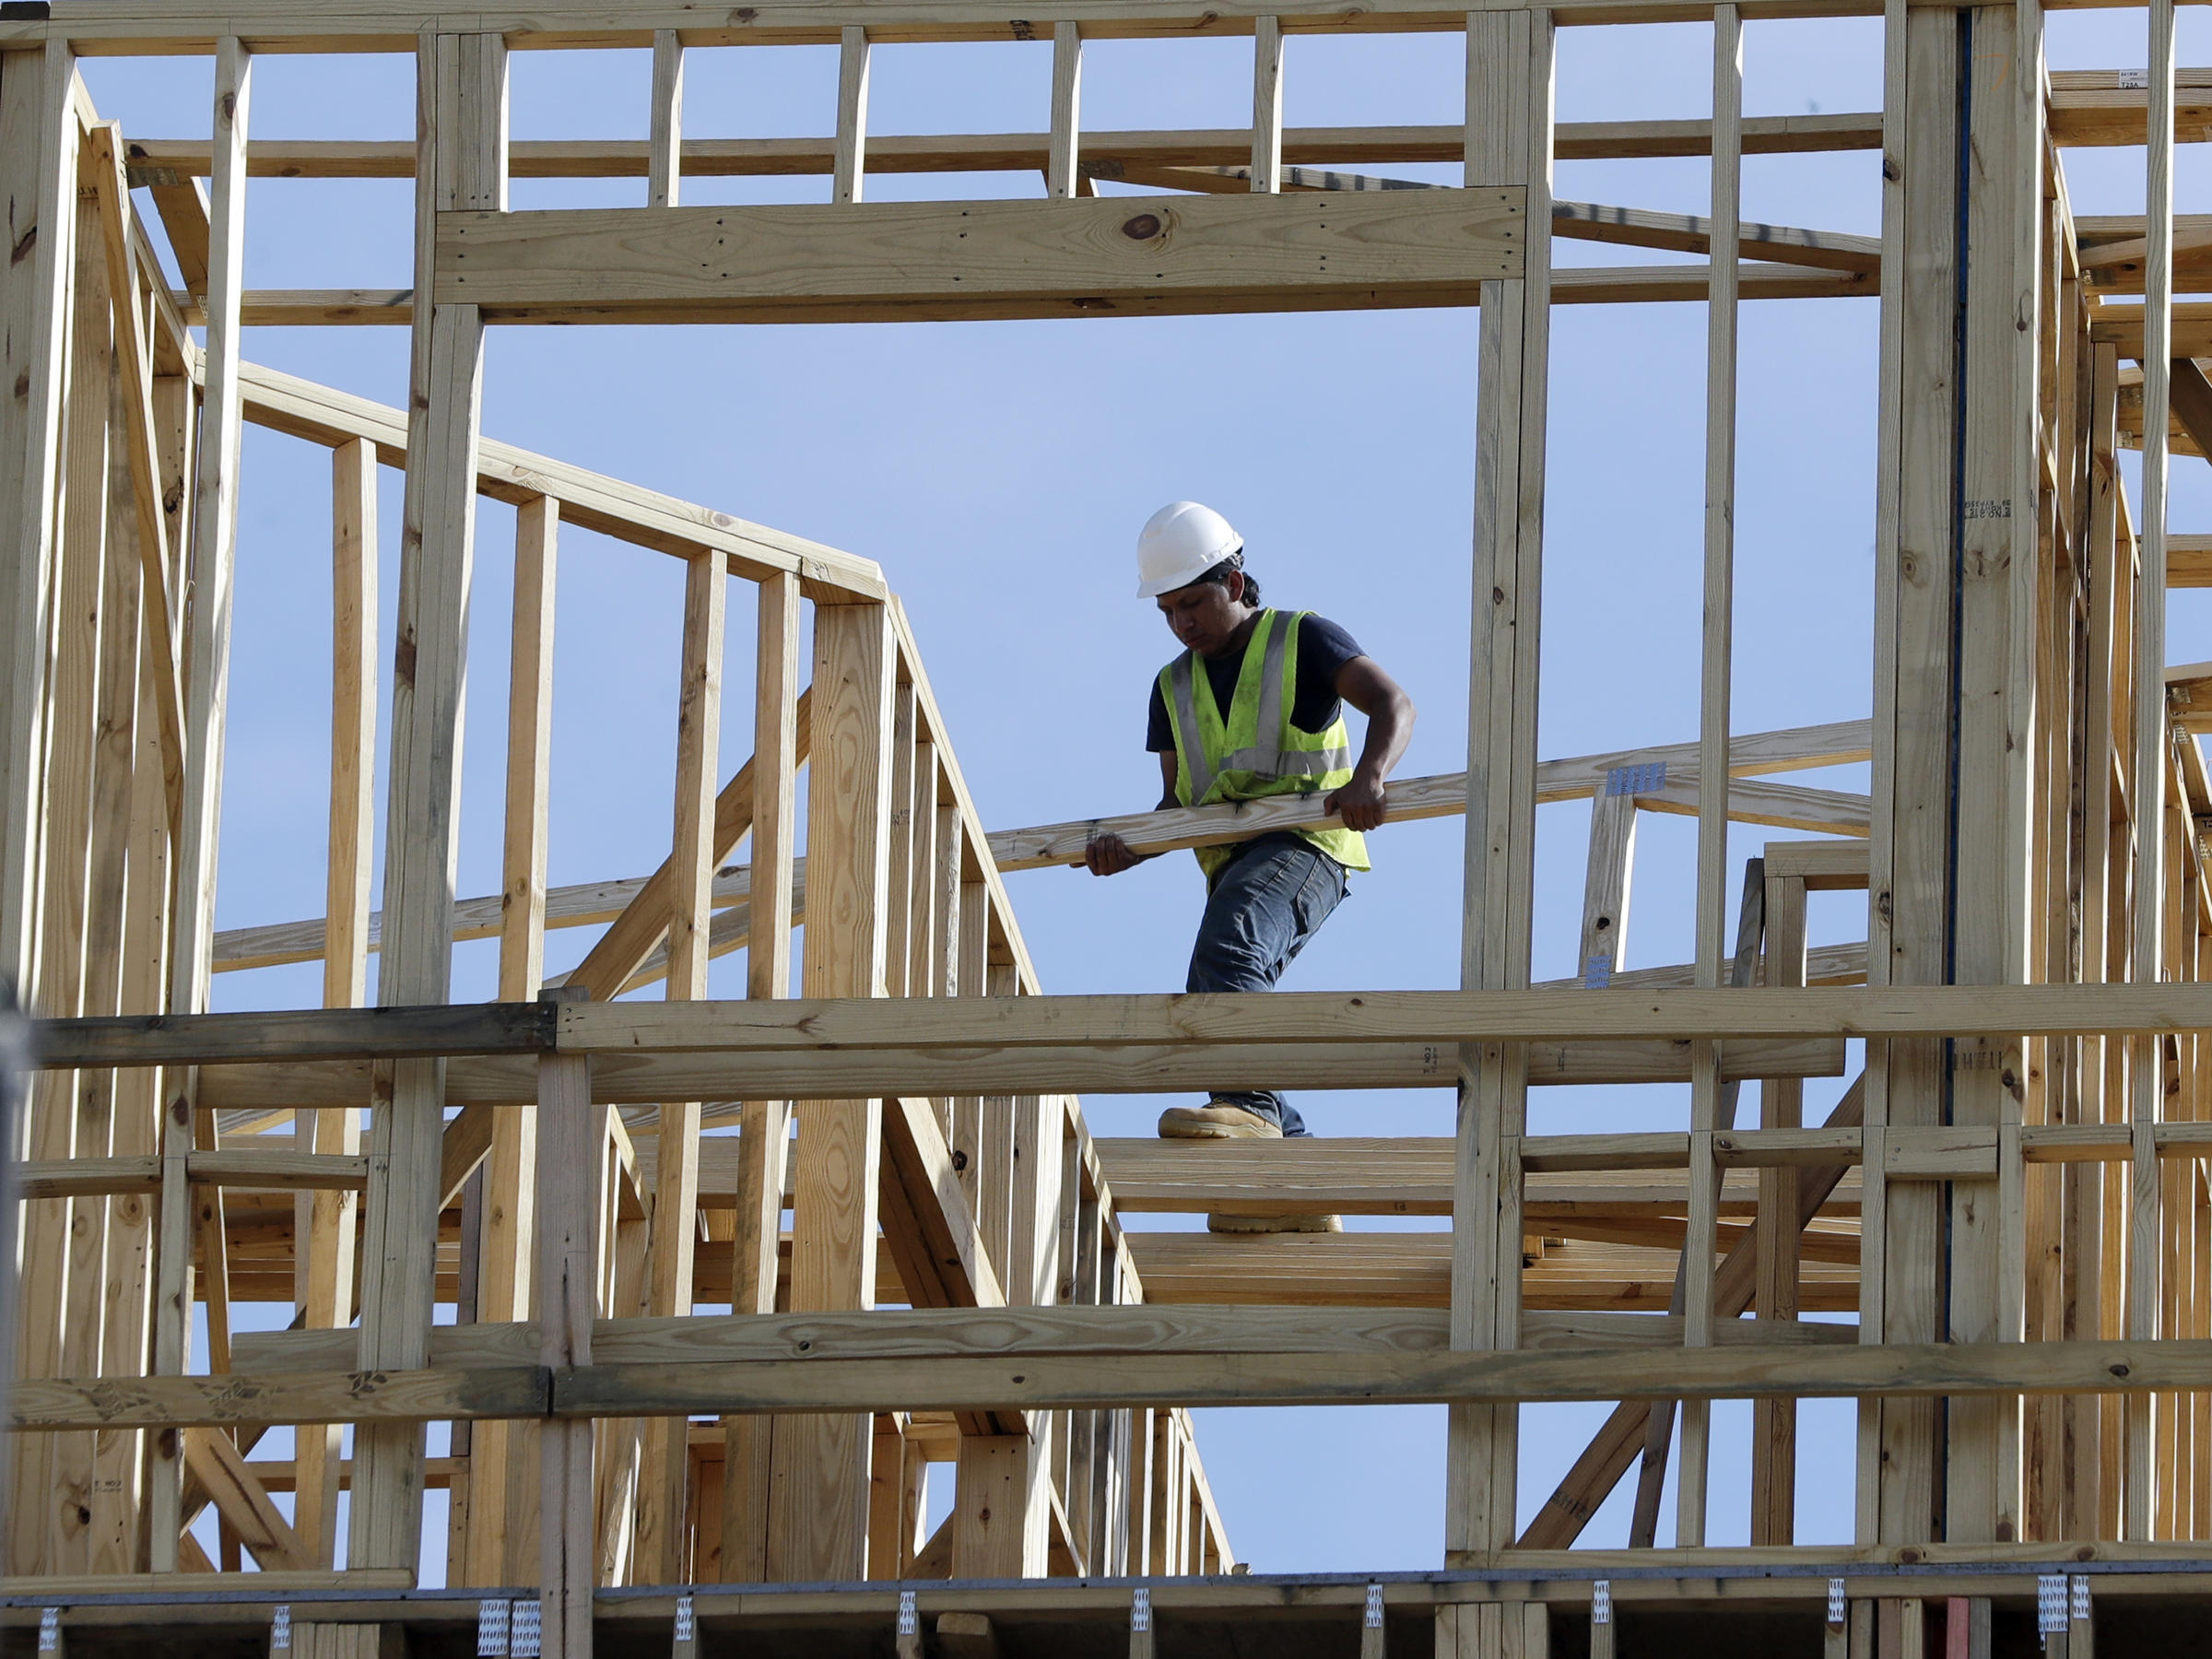 U.S. economy grows 2.6% in fourth quarter, GDP shows